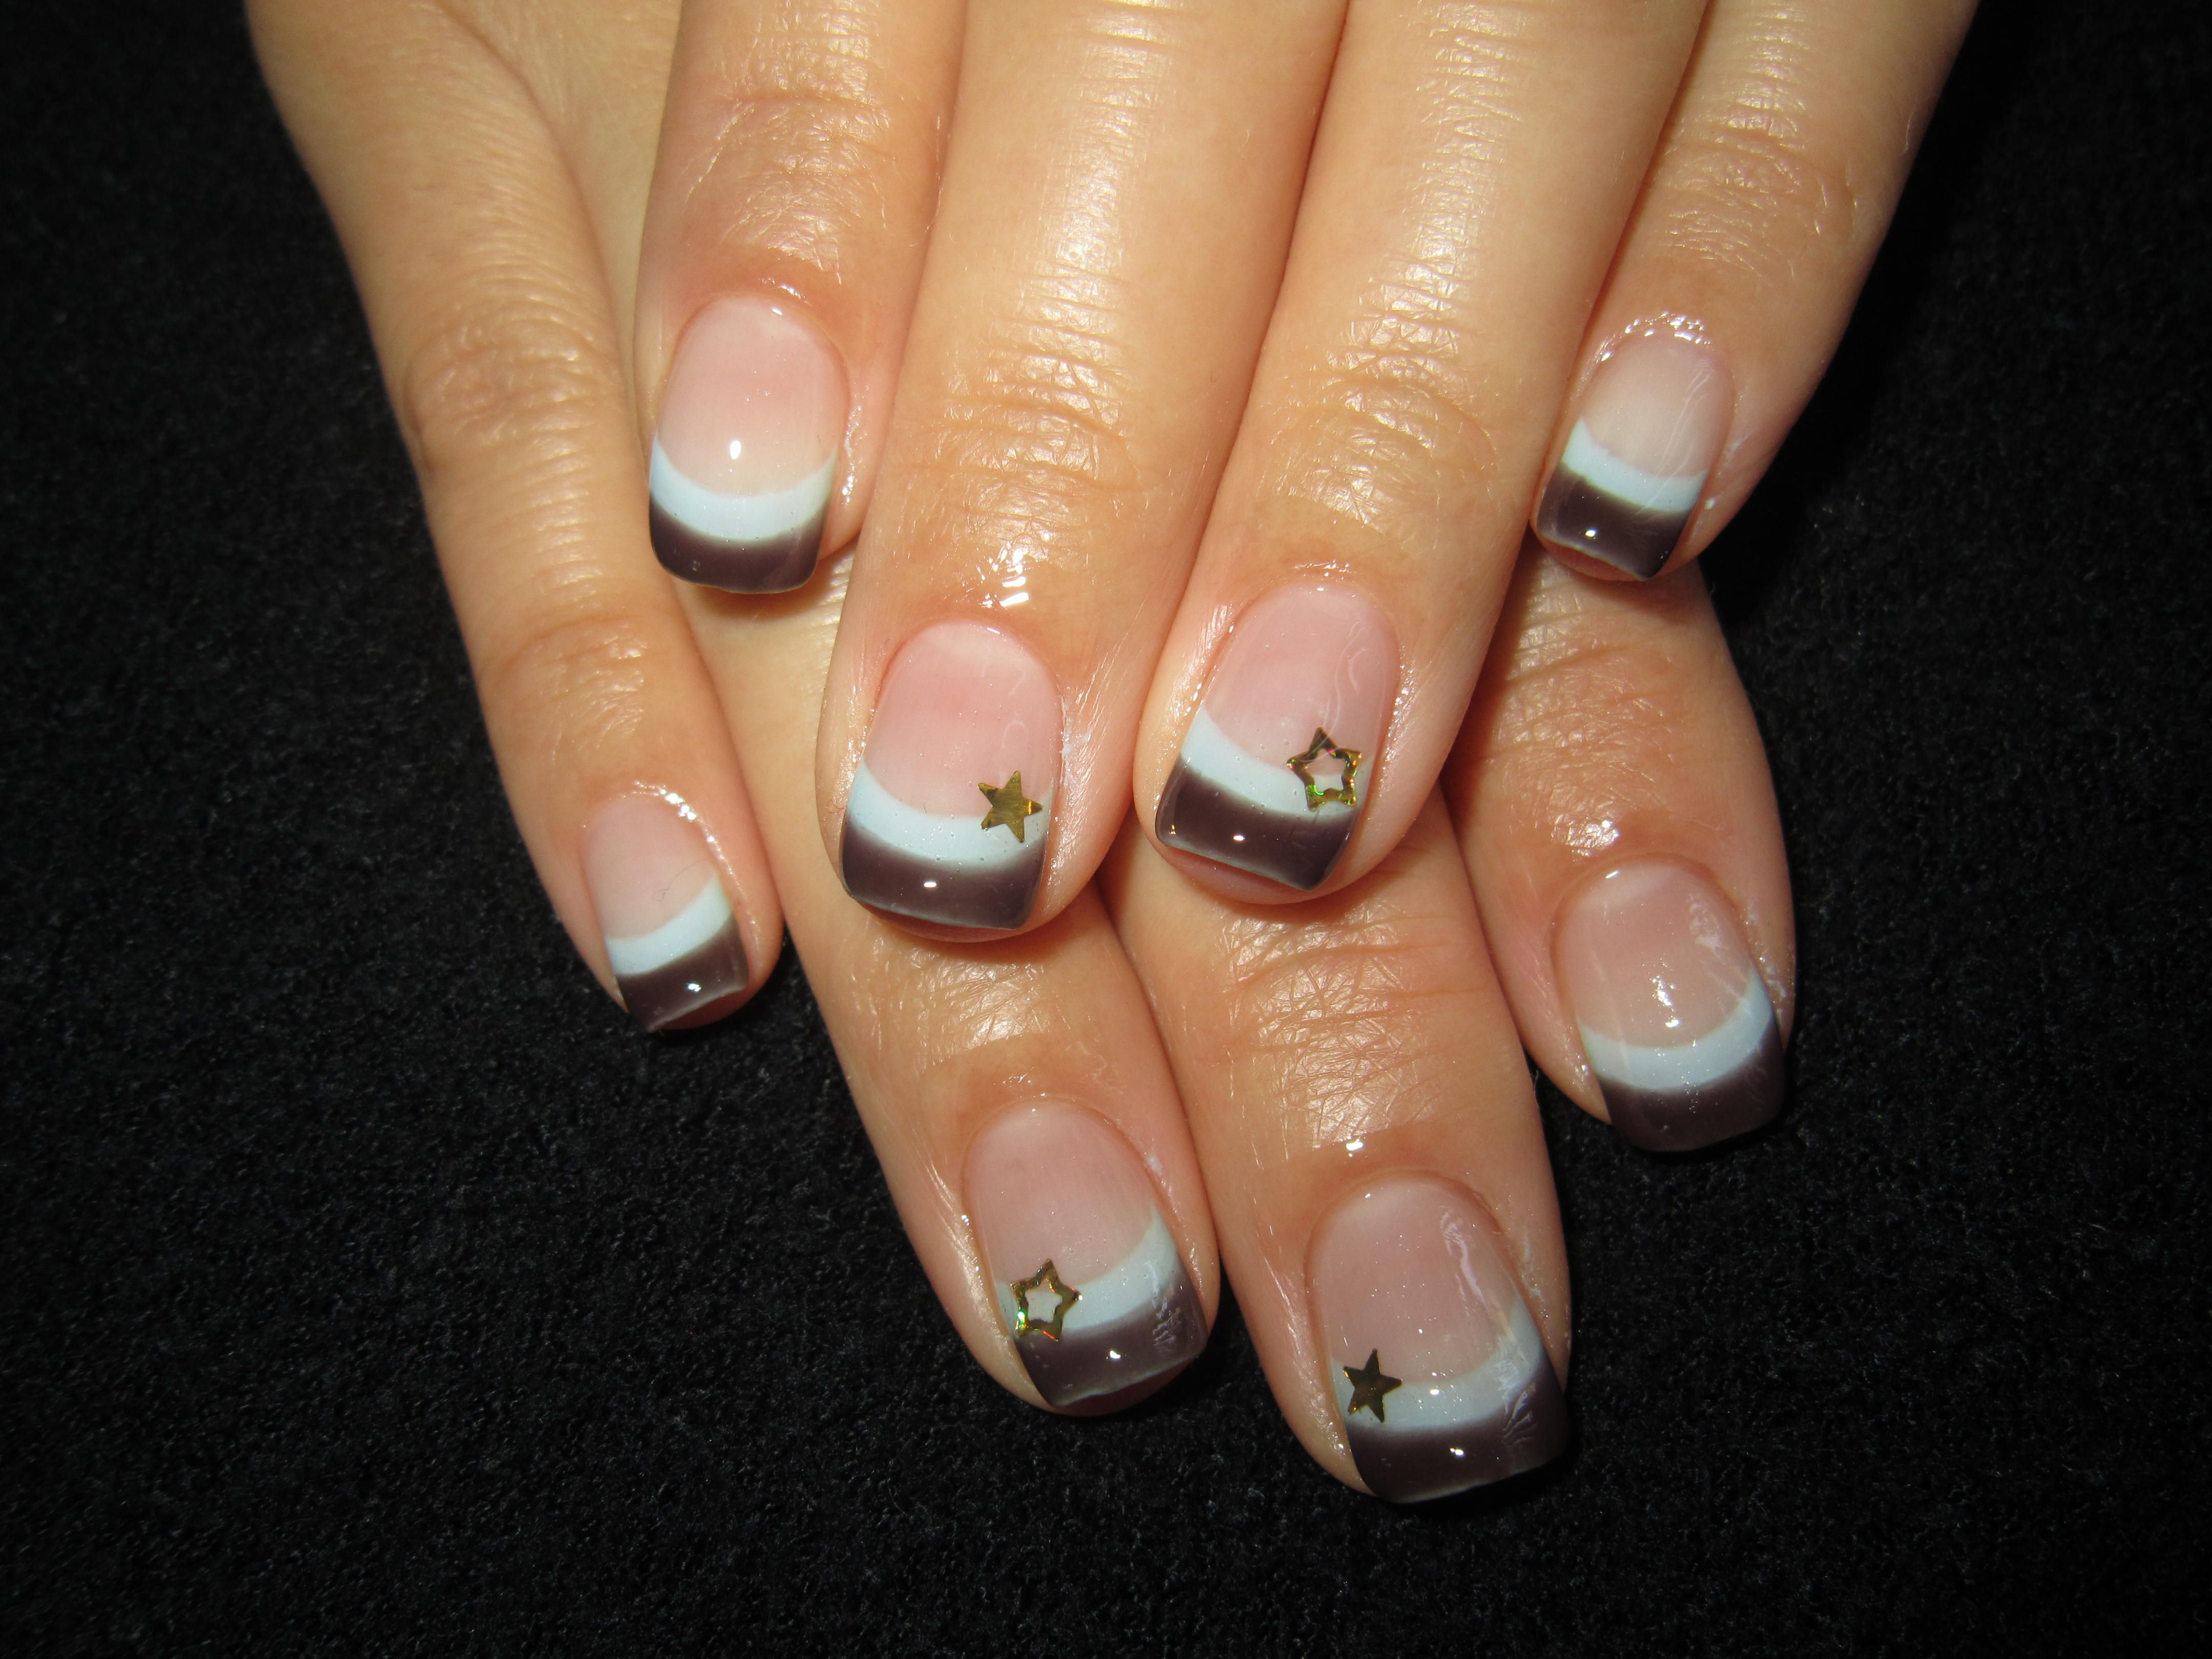 Emi Nails 041 Jpg 4 320 3 240 Pixels Gel Nail Designs French Nail Designs Nail Tip Designs